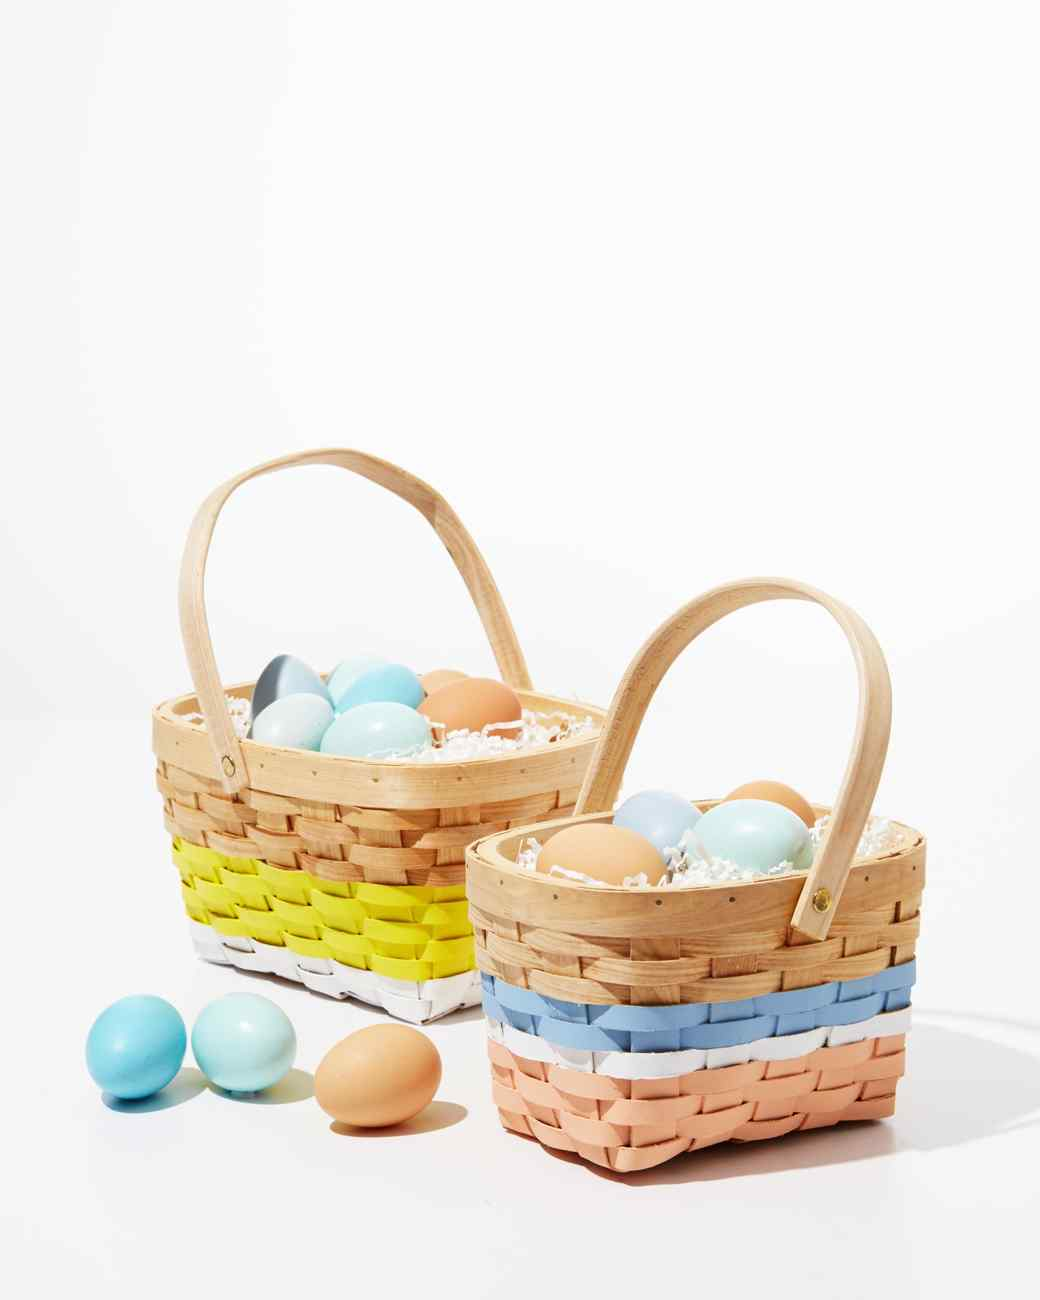 easter-basket-6607-d112853.jpg